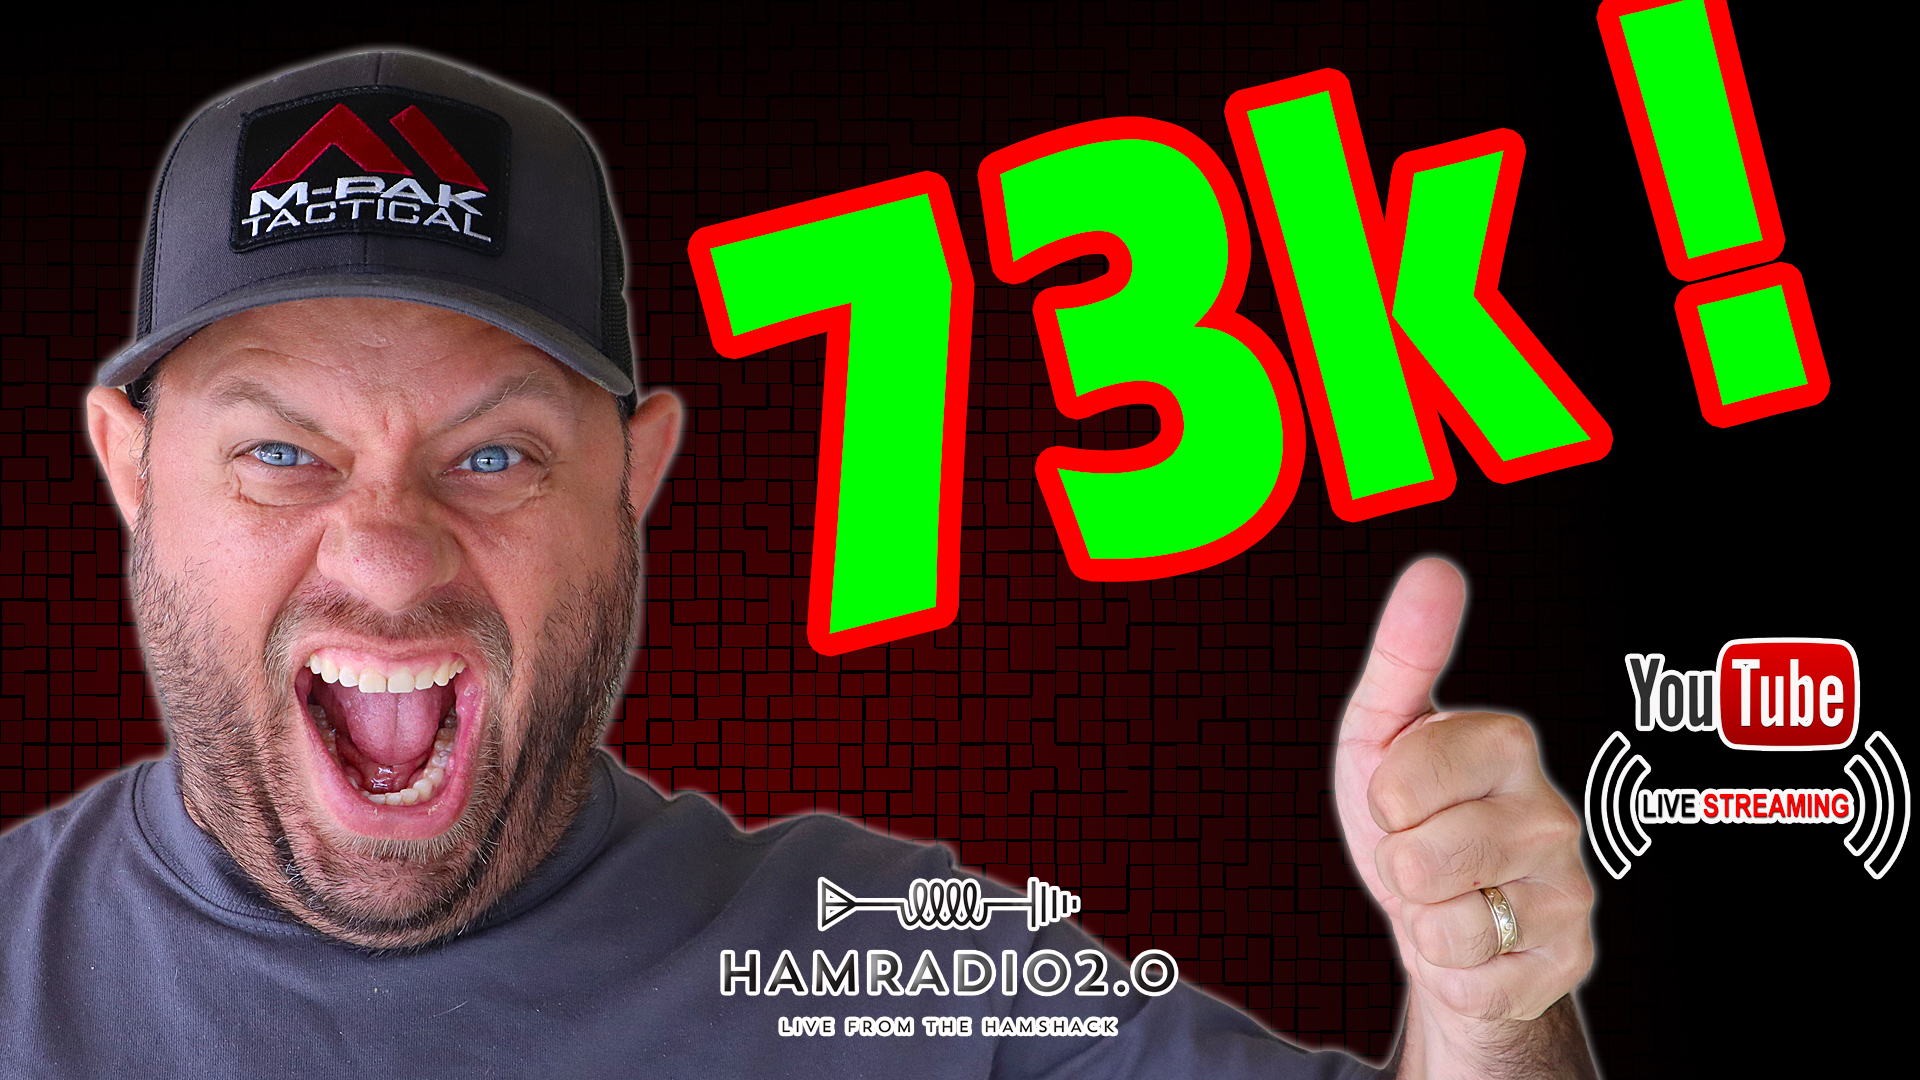 Episode 584: 73,000 Subscriber Giveaway and Operating as KA6LMS/5